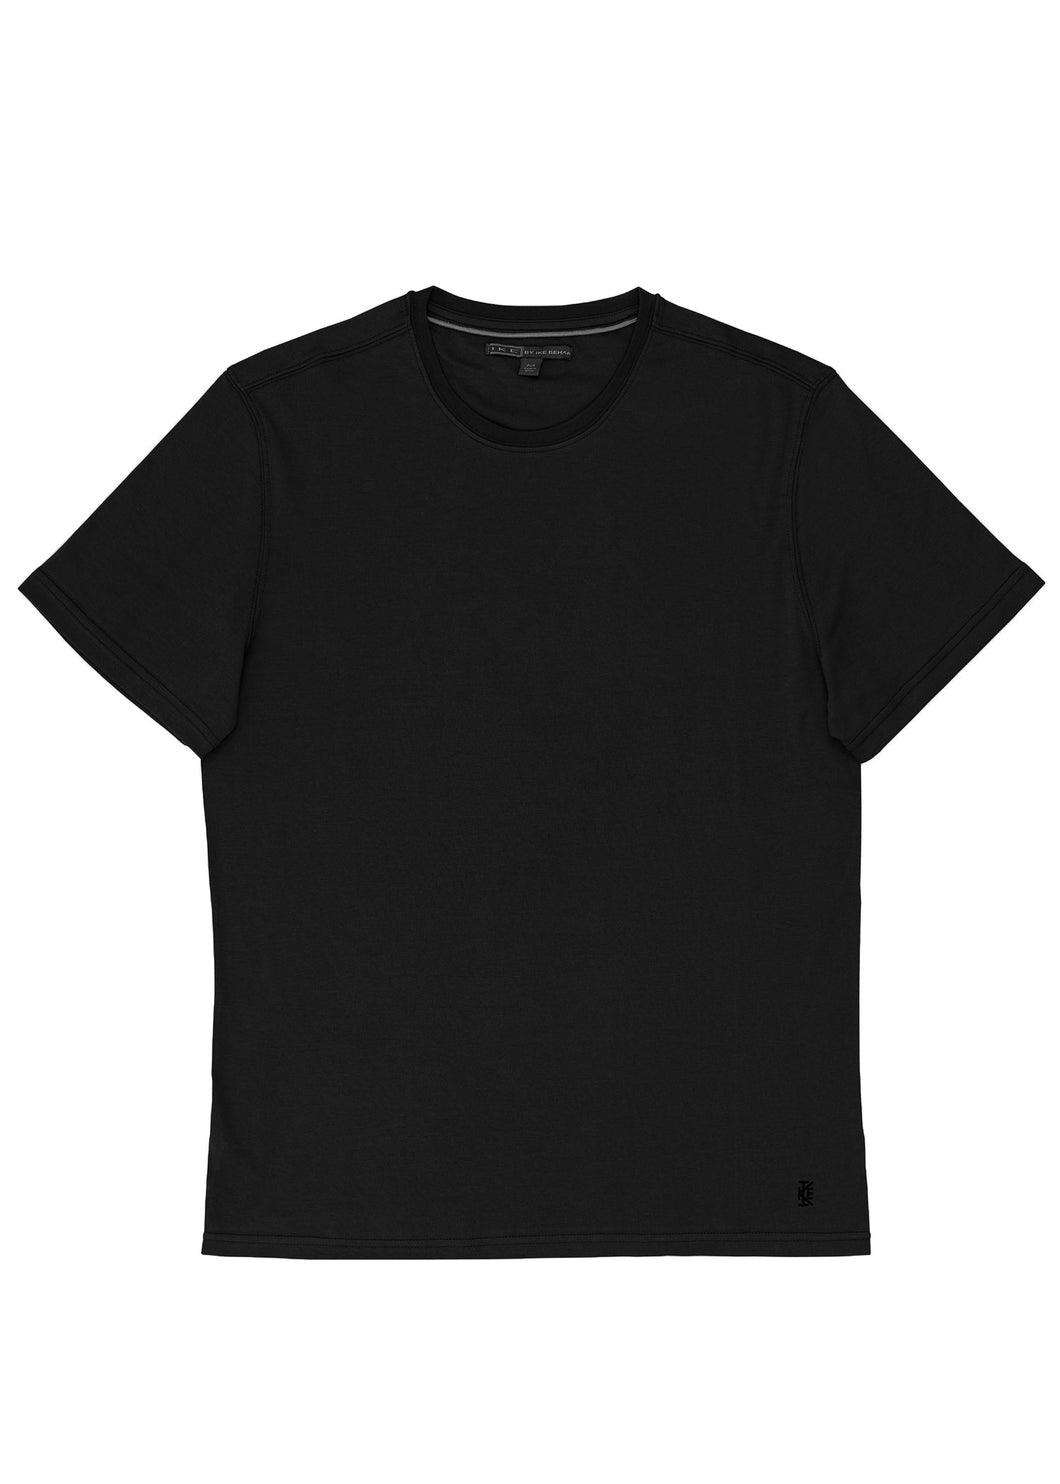 Black Pima Cotton Crew T-Shirt